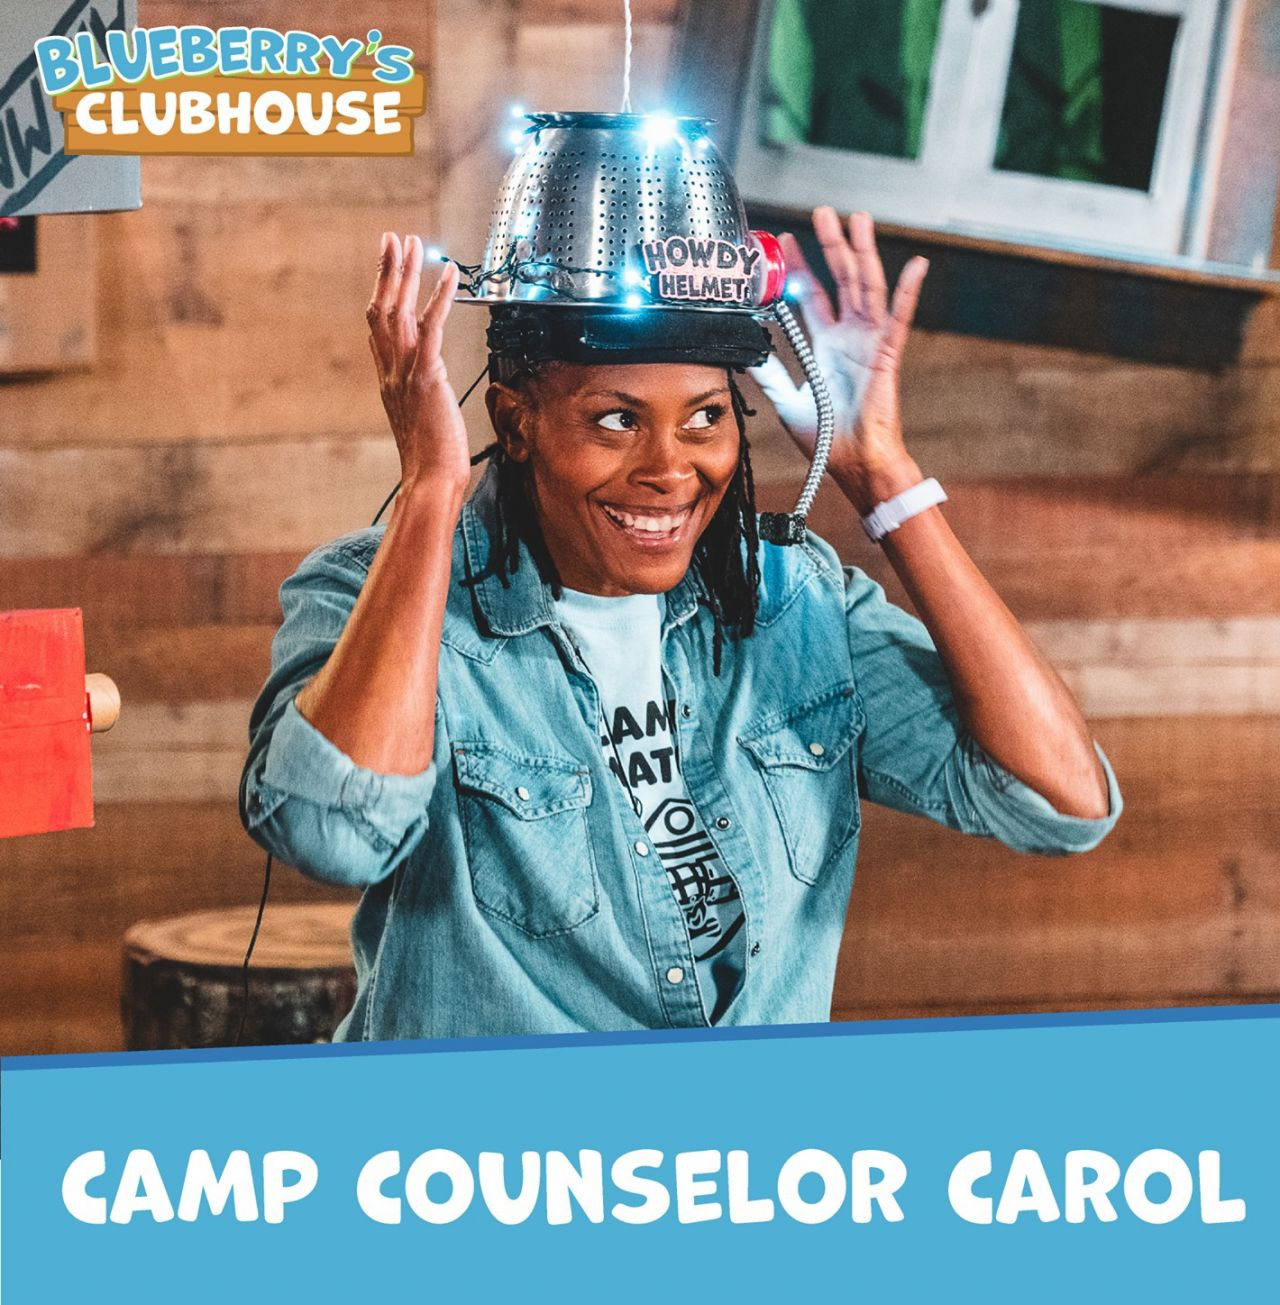 Camp Counselor Carol, wearing a light blue Camp Onomatopoeia T-shirt under a denim, long-sleeved snap-front shirt tries on the Howdy Helmet, which resembles a colonnade with lights and headset